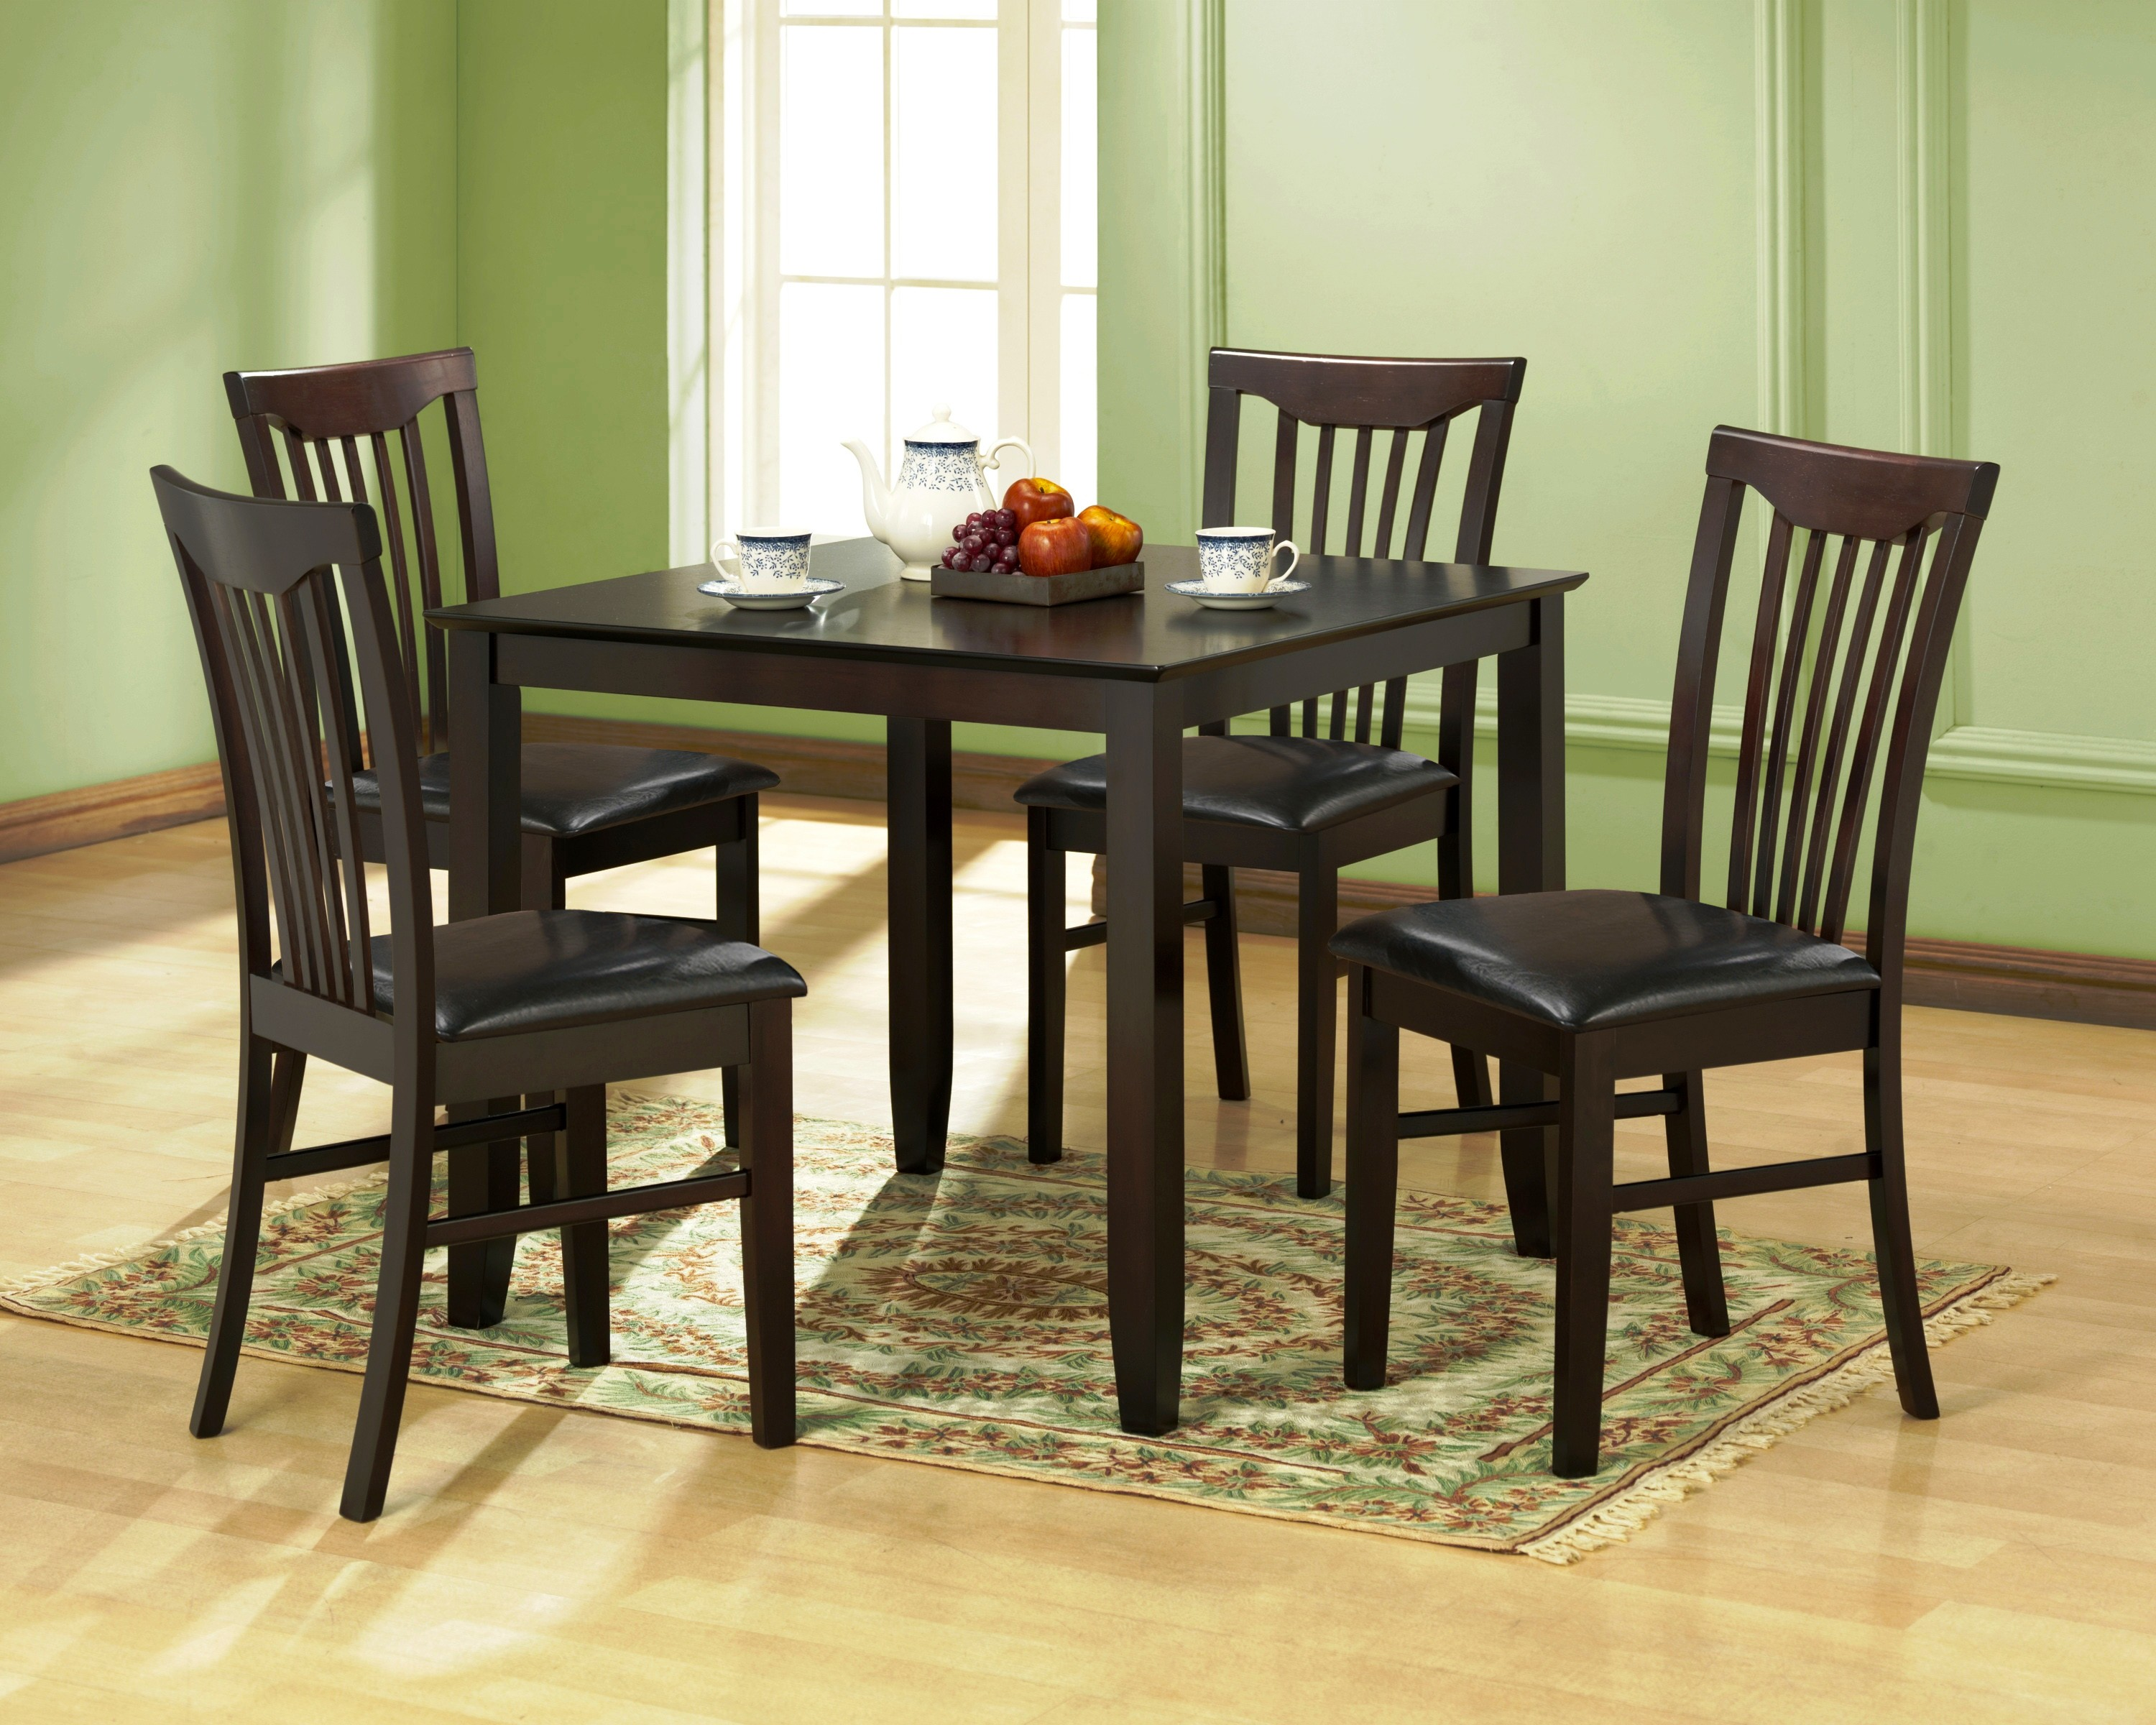 dining table set deals dining table sets deals